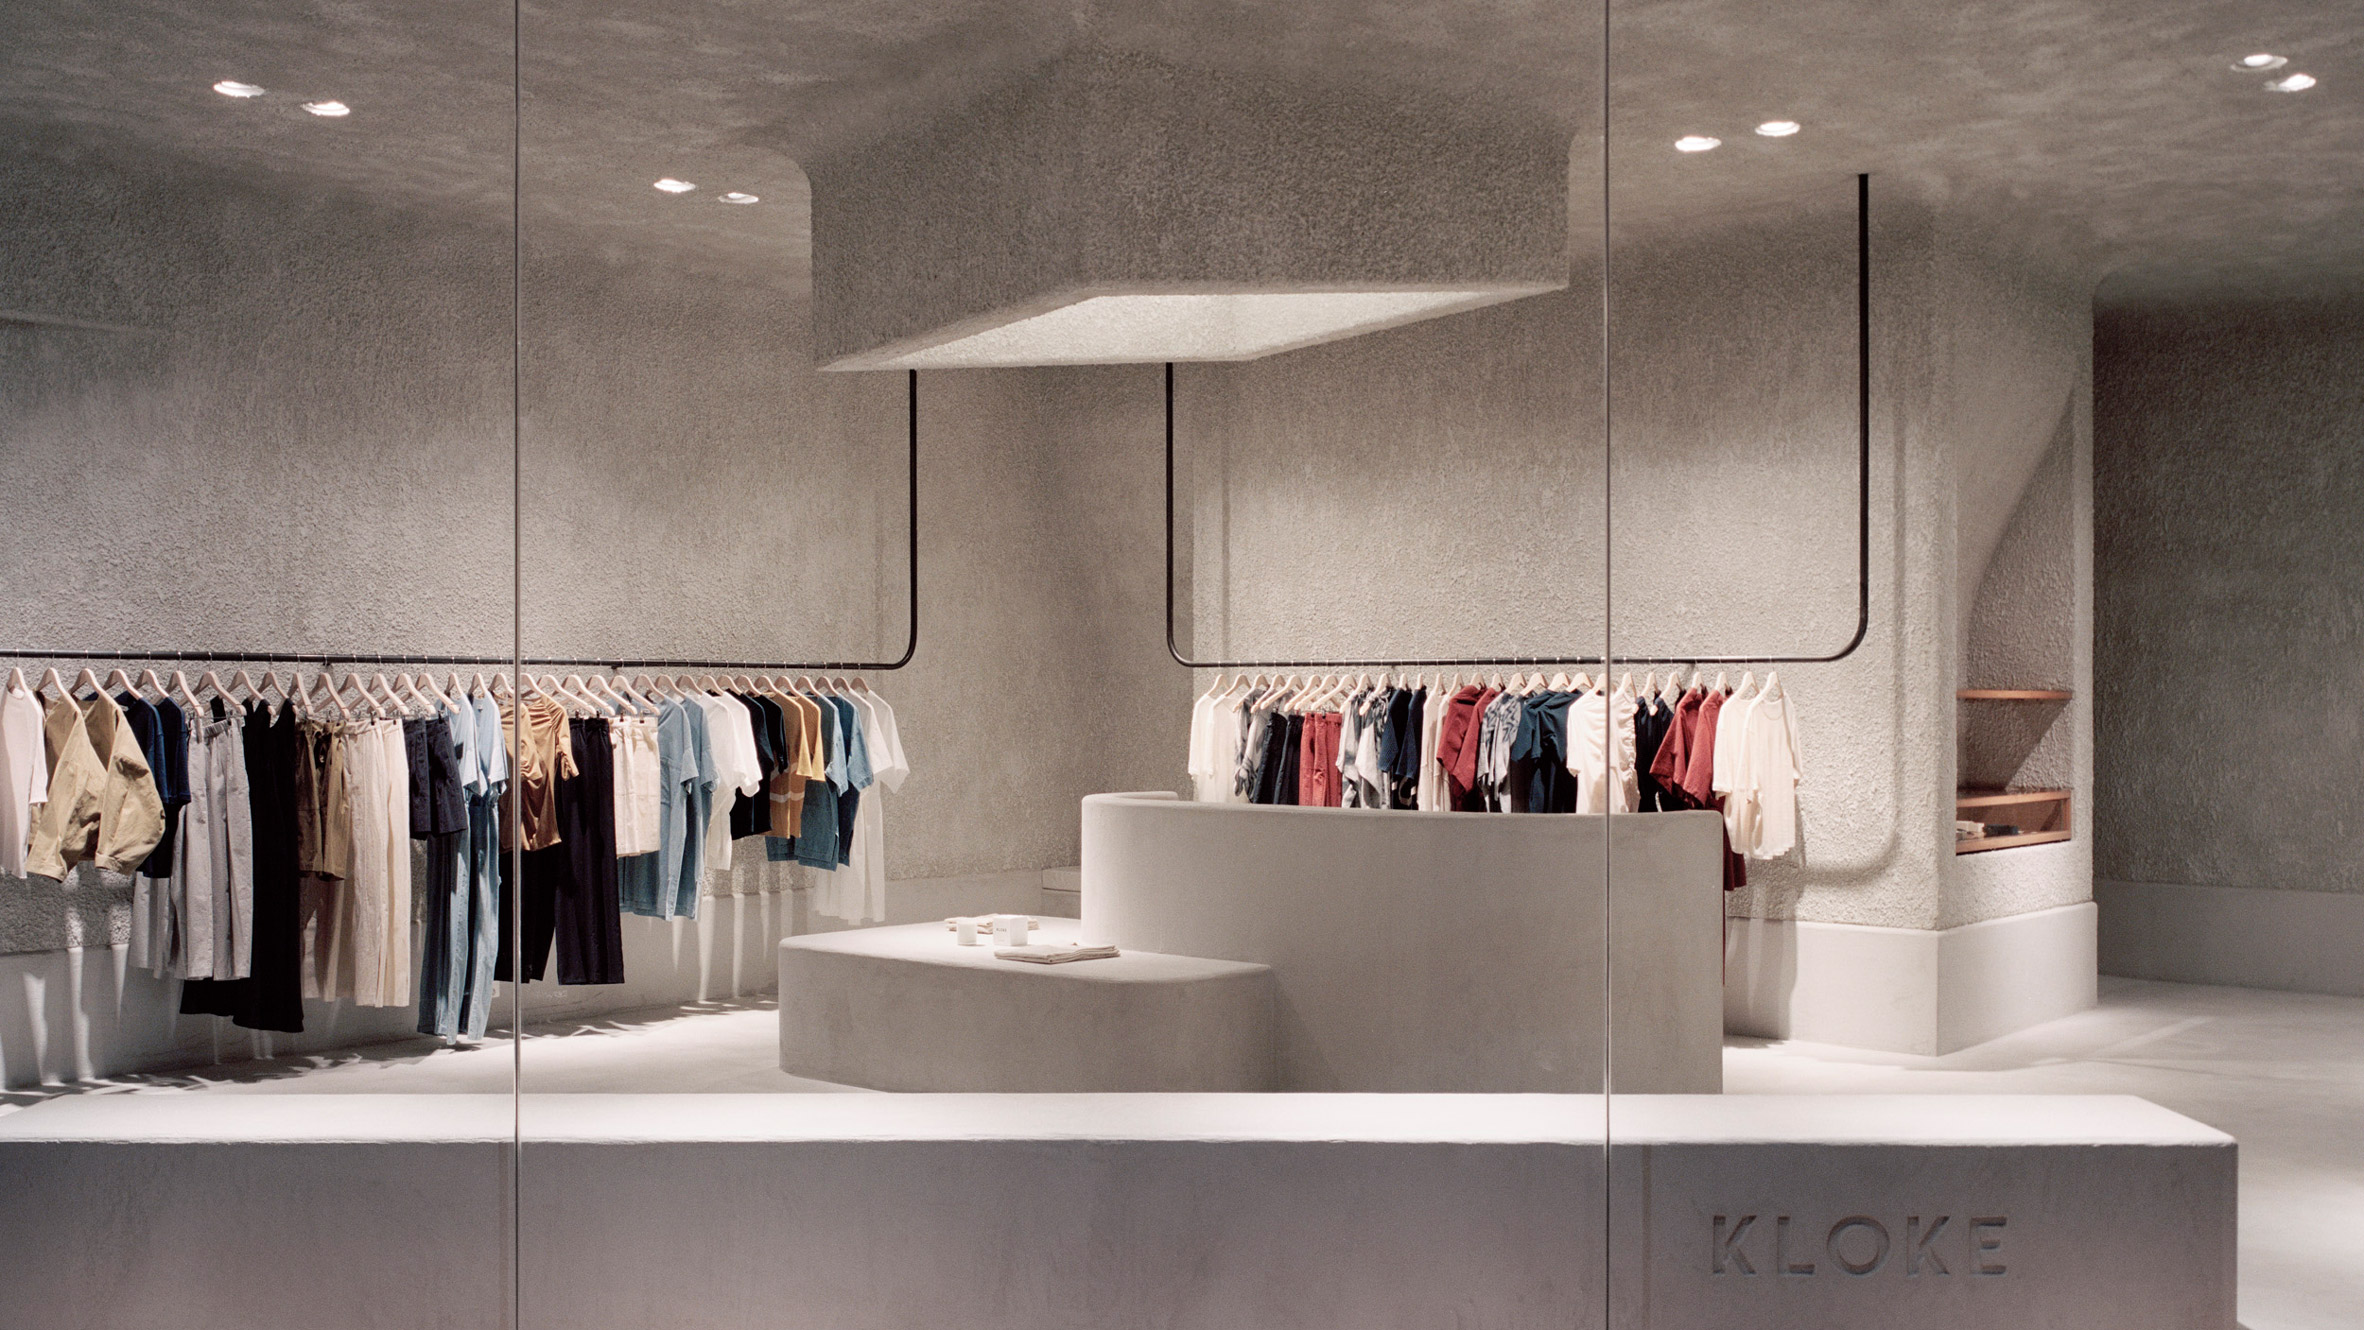 Retail Display Stands Australia Studio Goss Takes Cues From Brutalism For Melbourne Clothing Store